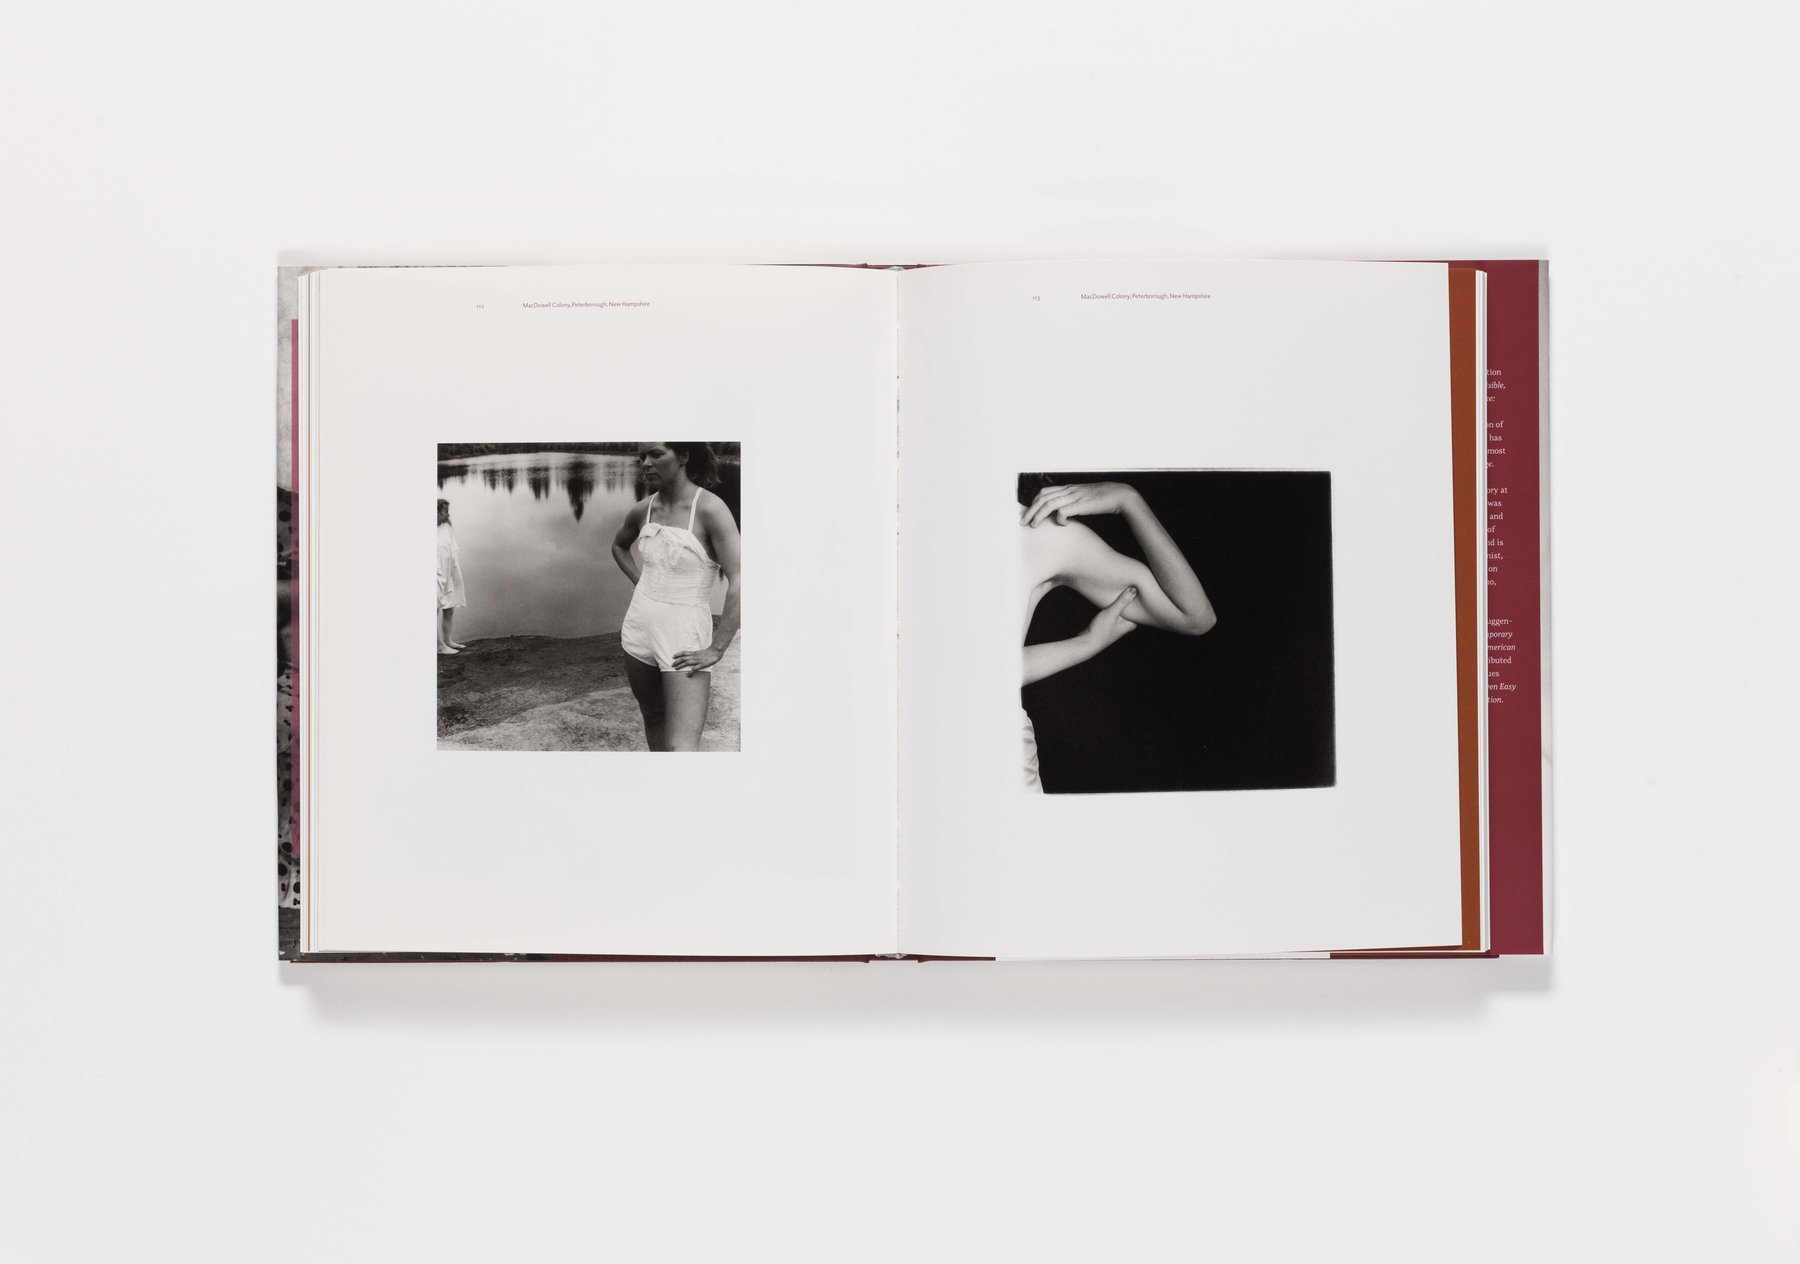 Francesca Woodman publication pages 112-113